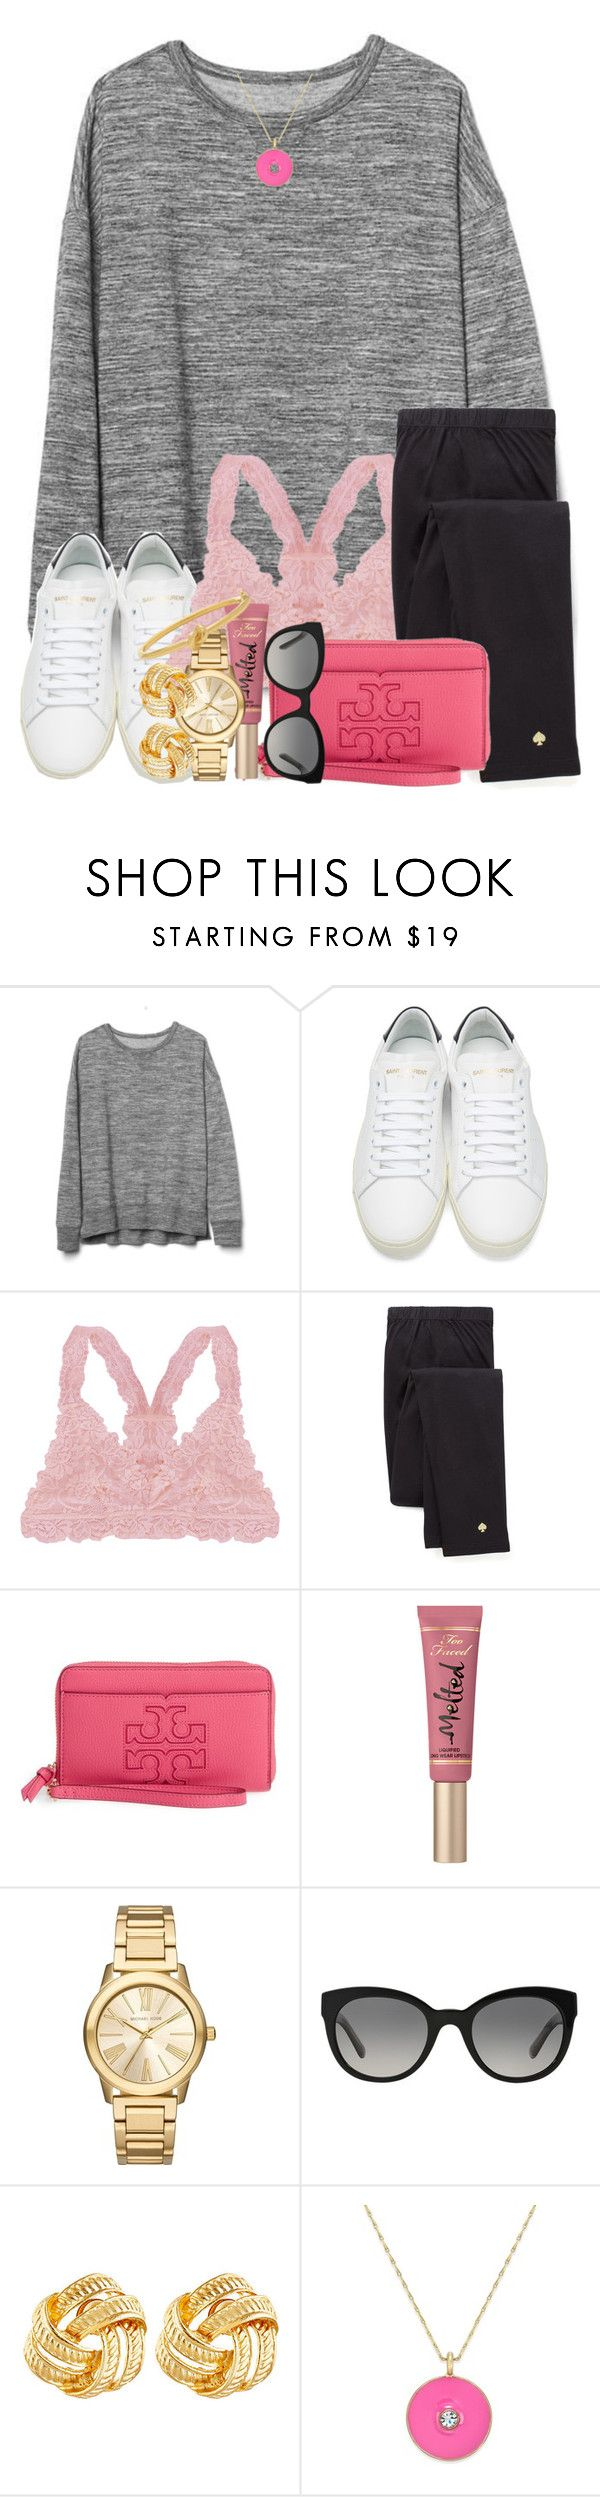 """Hannah Montana marathon is "" by thefashionbyem ❤ liked on Polyvore featuring Gap, Yves Saint Laurent, Humble Chic, Kate Spade, Tory Burch, Too Faced Cosmetics, Michael Kors, Burberry and Susan Shaw"